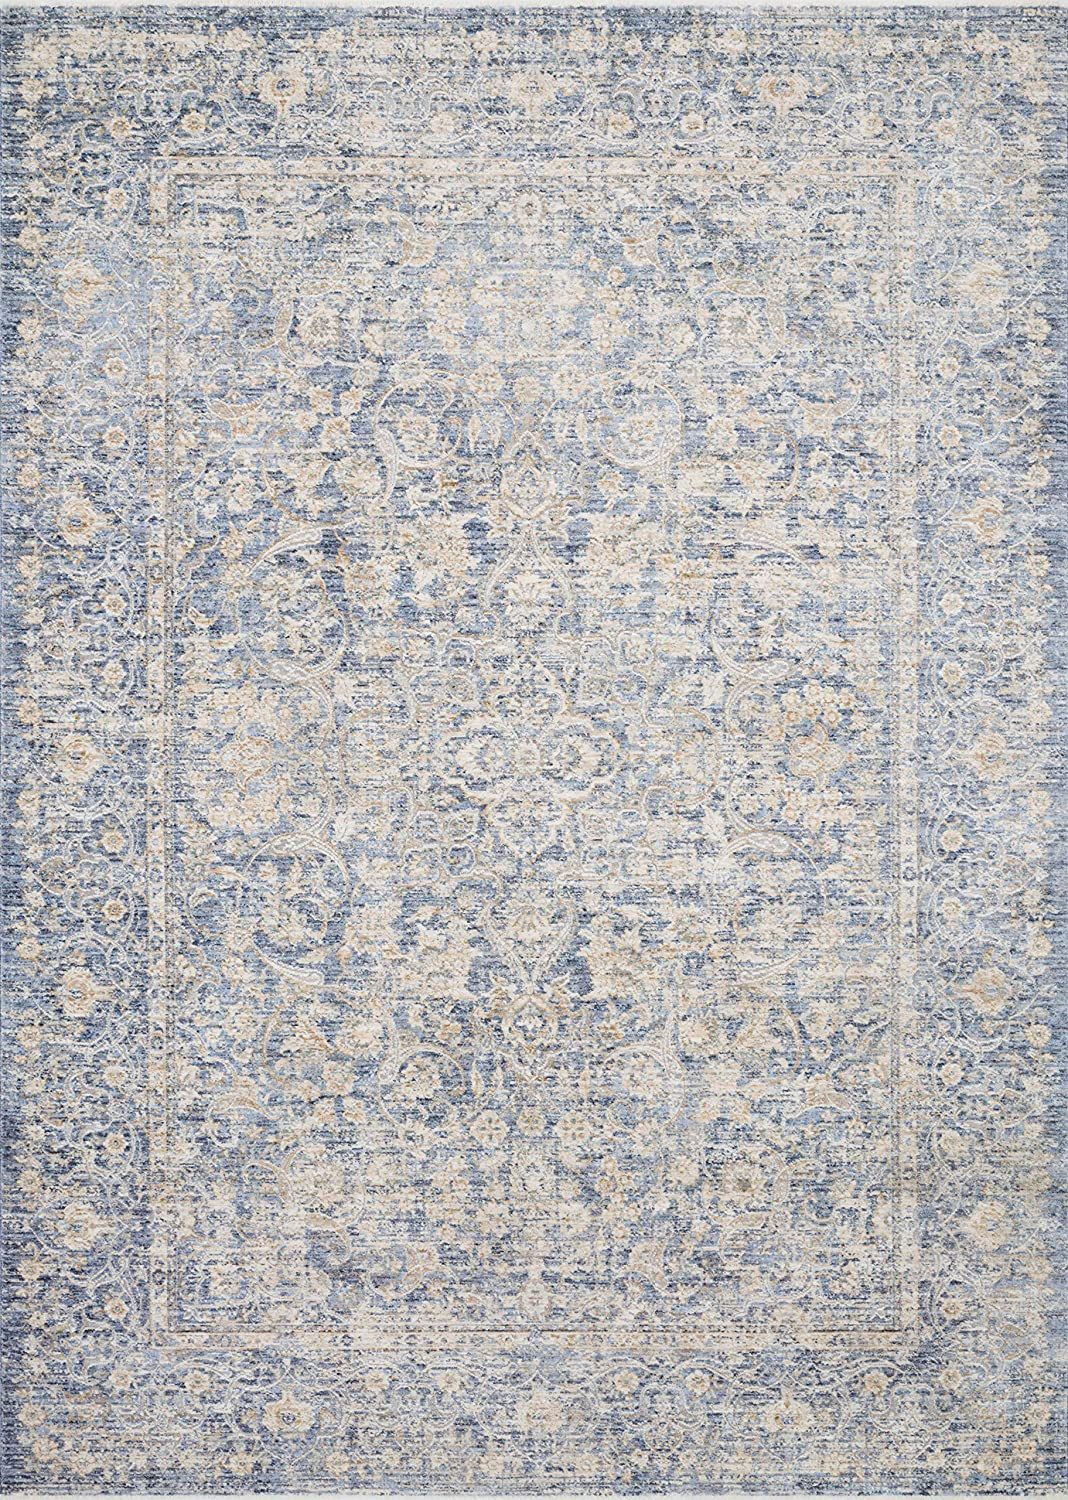 """Loloi Pandora Collection Distressed Persian Vintage Area Rug, 2'6"""" x 10'0"""" Runner, Blue/Gold"""